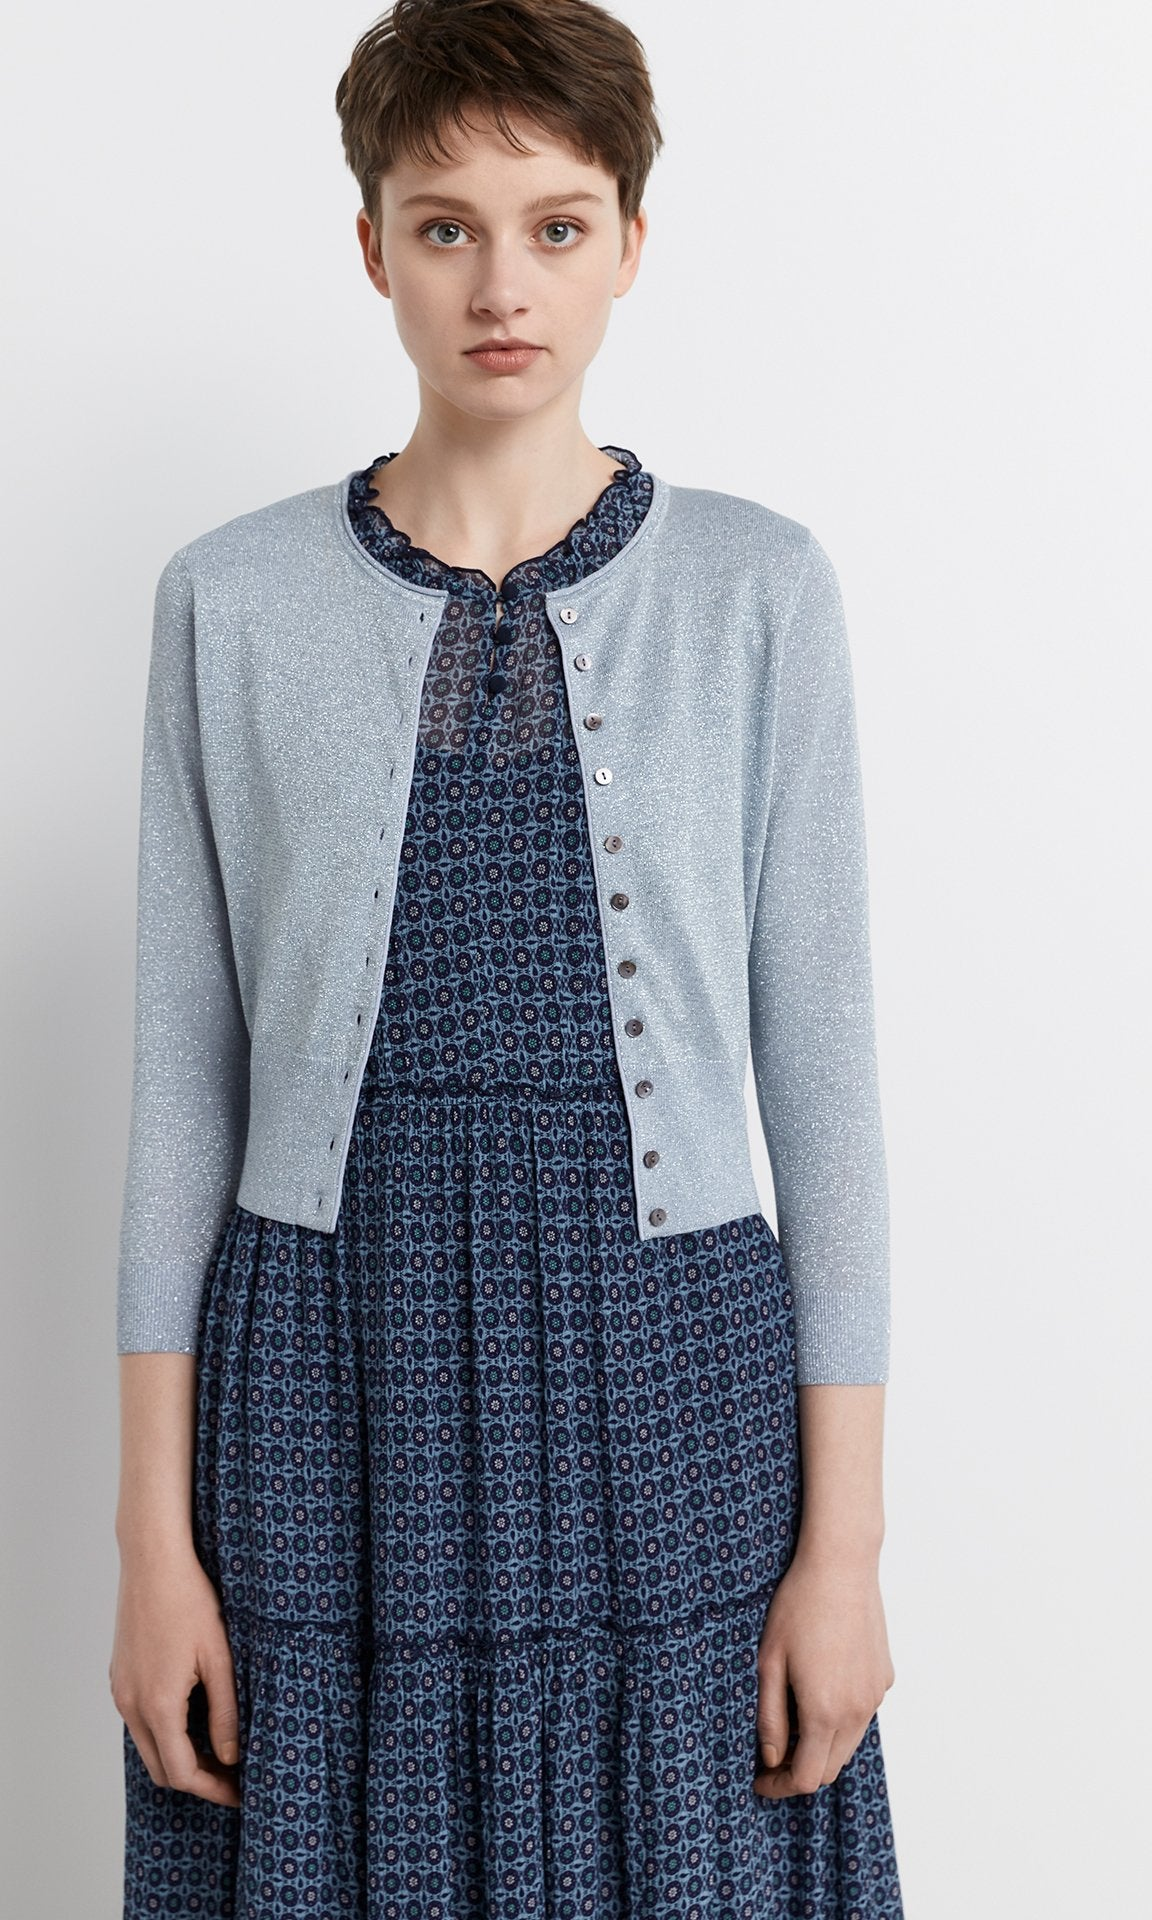 Positano Cardigan - Pale Blue